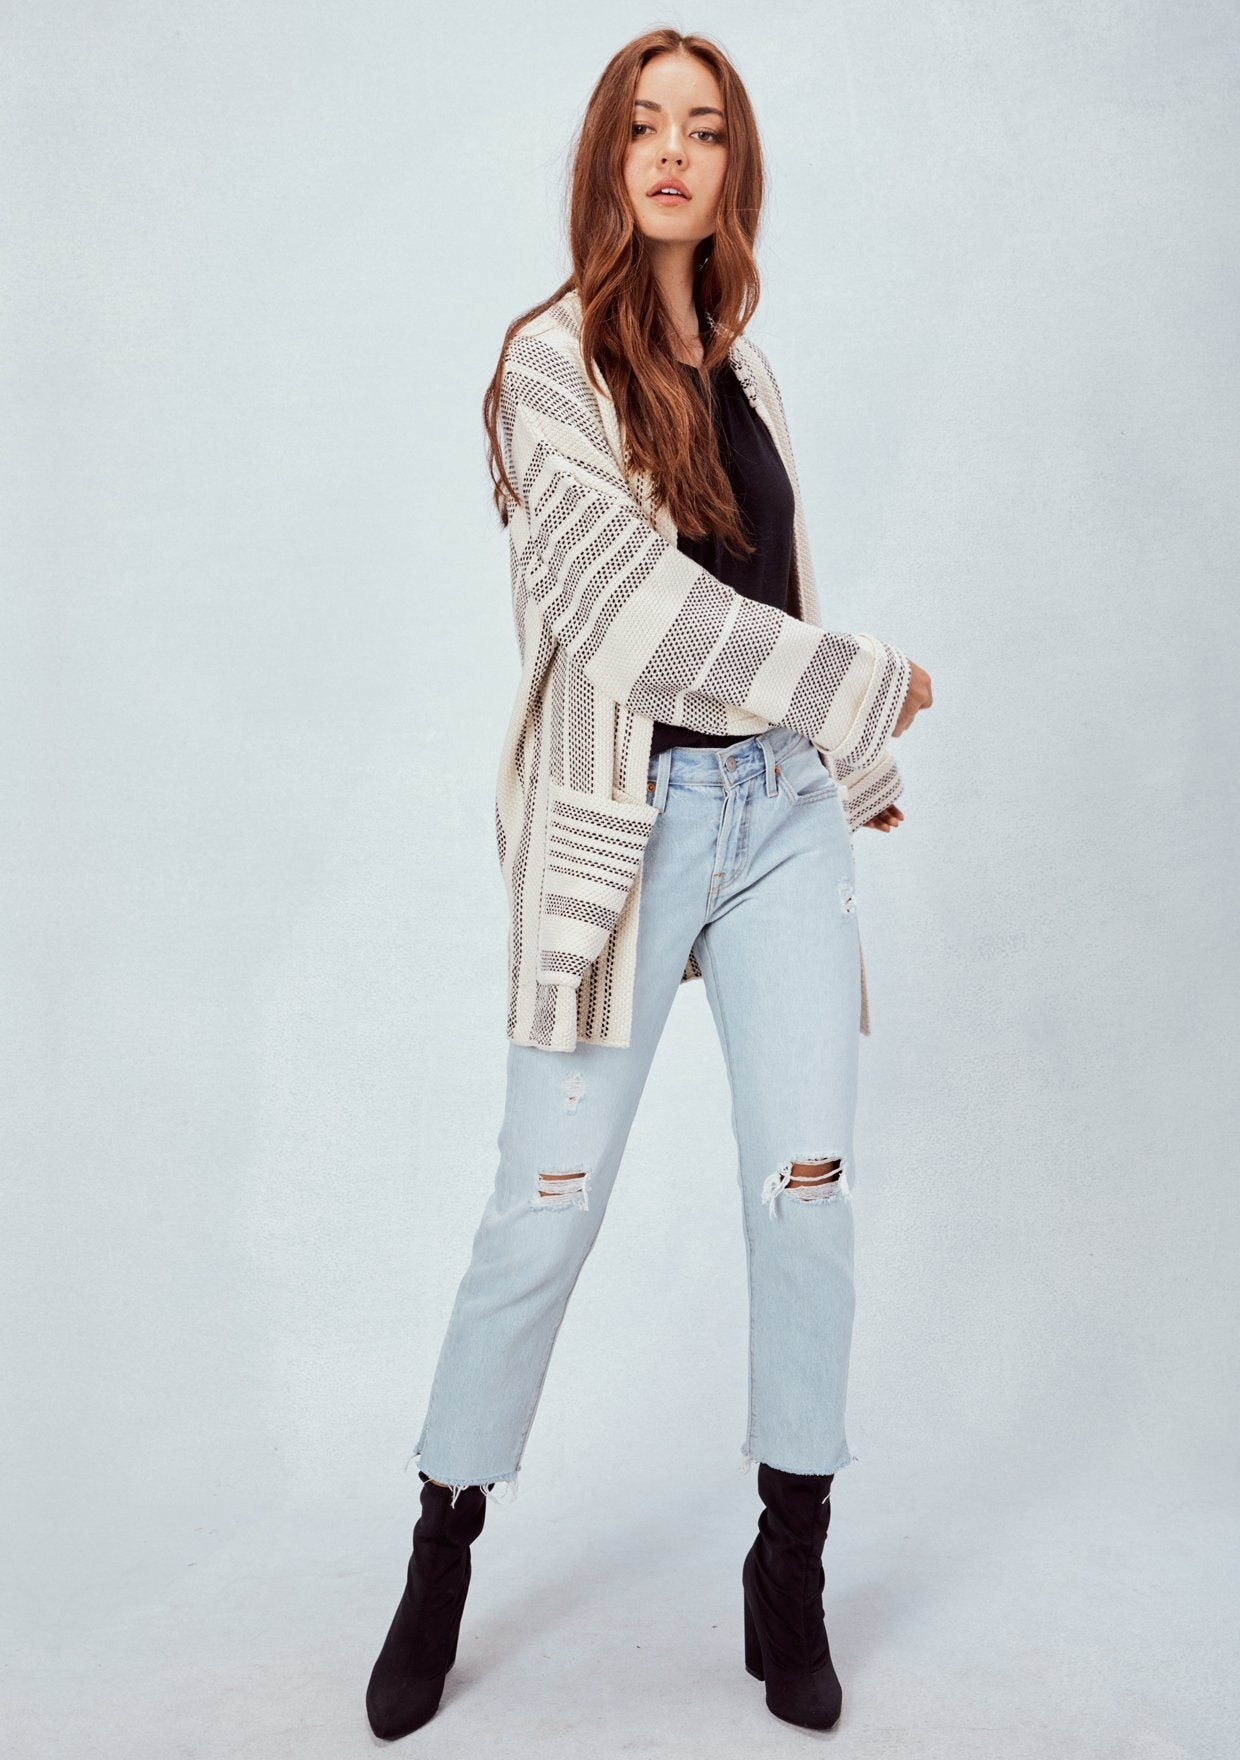 [Color: Ecru/Black] Lovestitch Ecru/Black, oversized and slouchy, striped, cotton knit cardigan